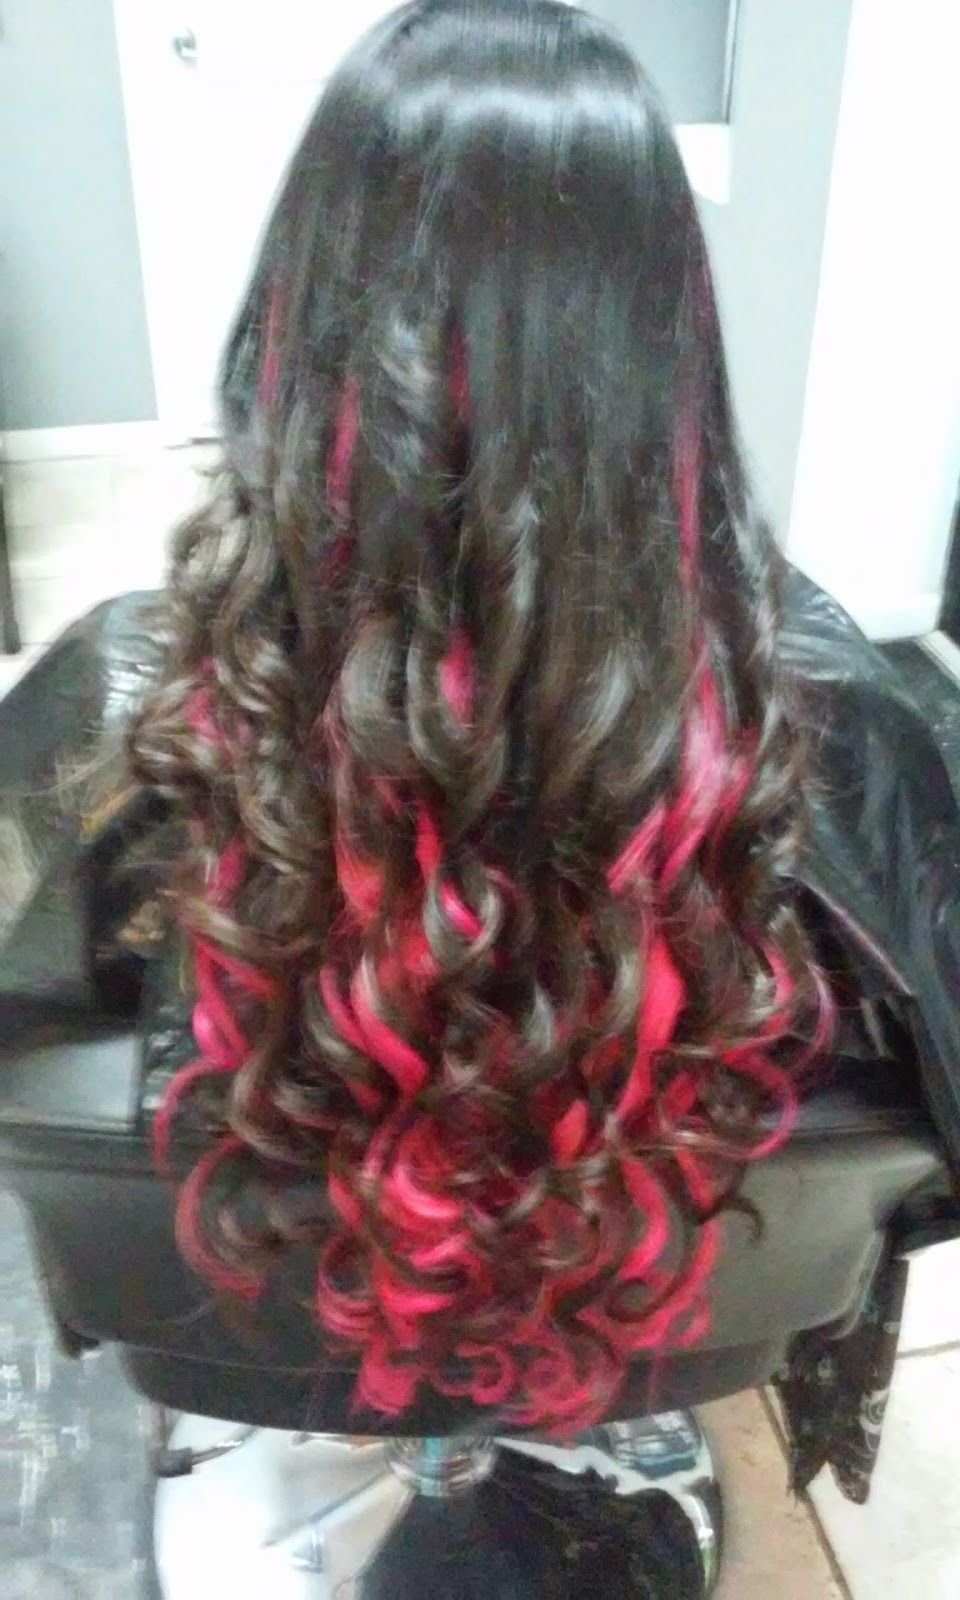 Emerge beauty by Enrique - hair care  | Photo 4 of 10 | Address: 1401 S 49th Ct, Cicero, IL 60804, USA | Phone: (773) 557-3525